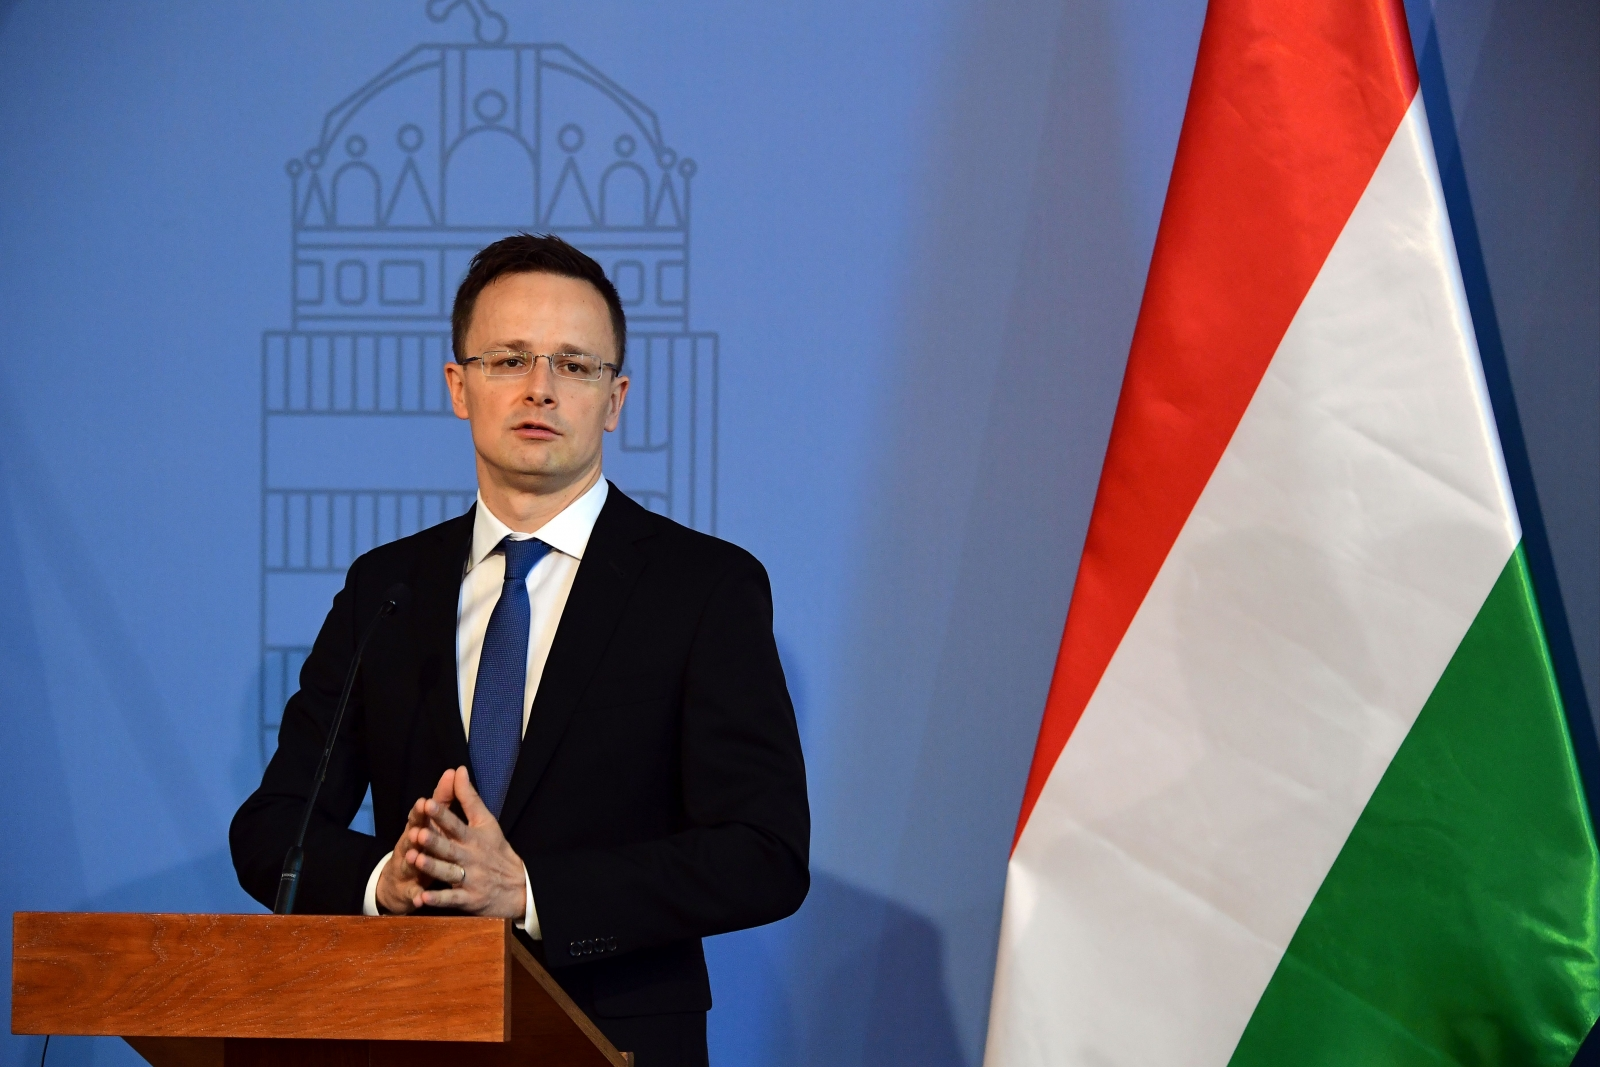 Hungary Foreign Minister